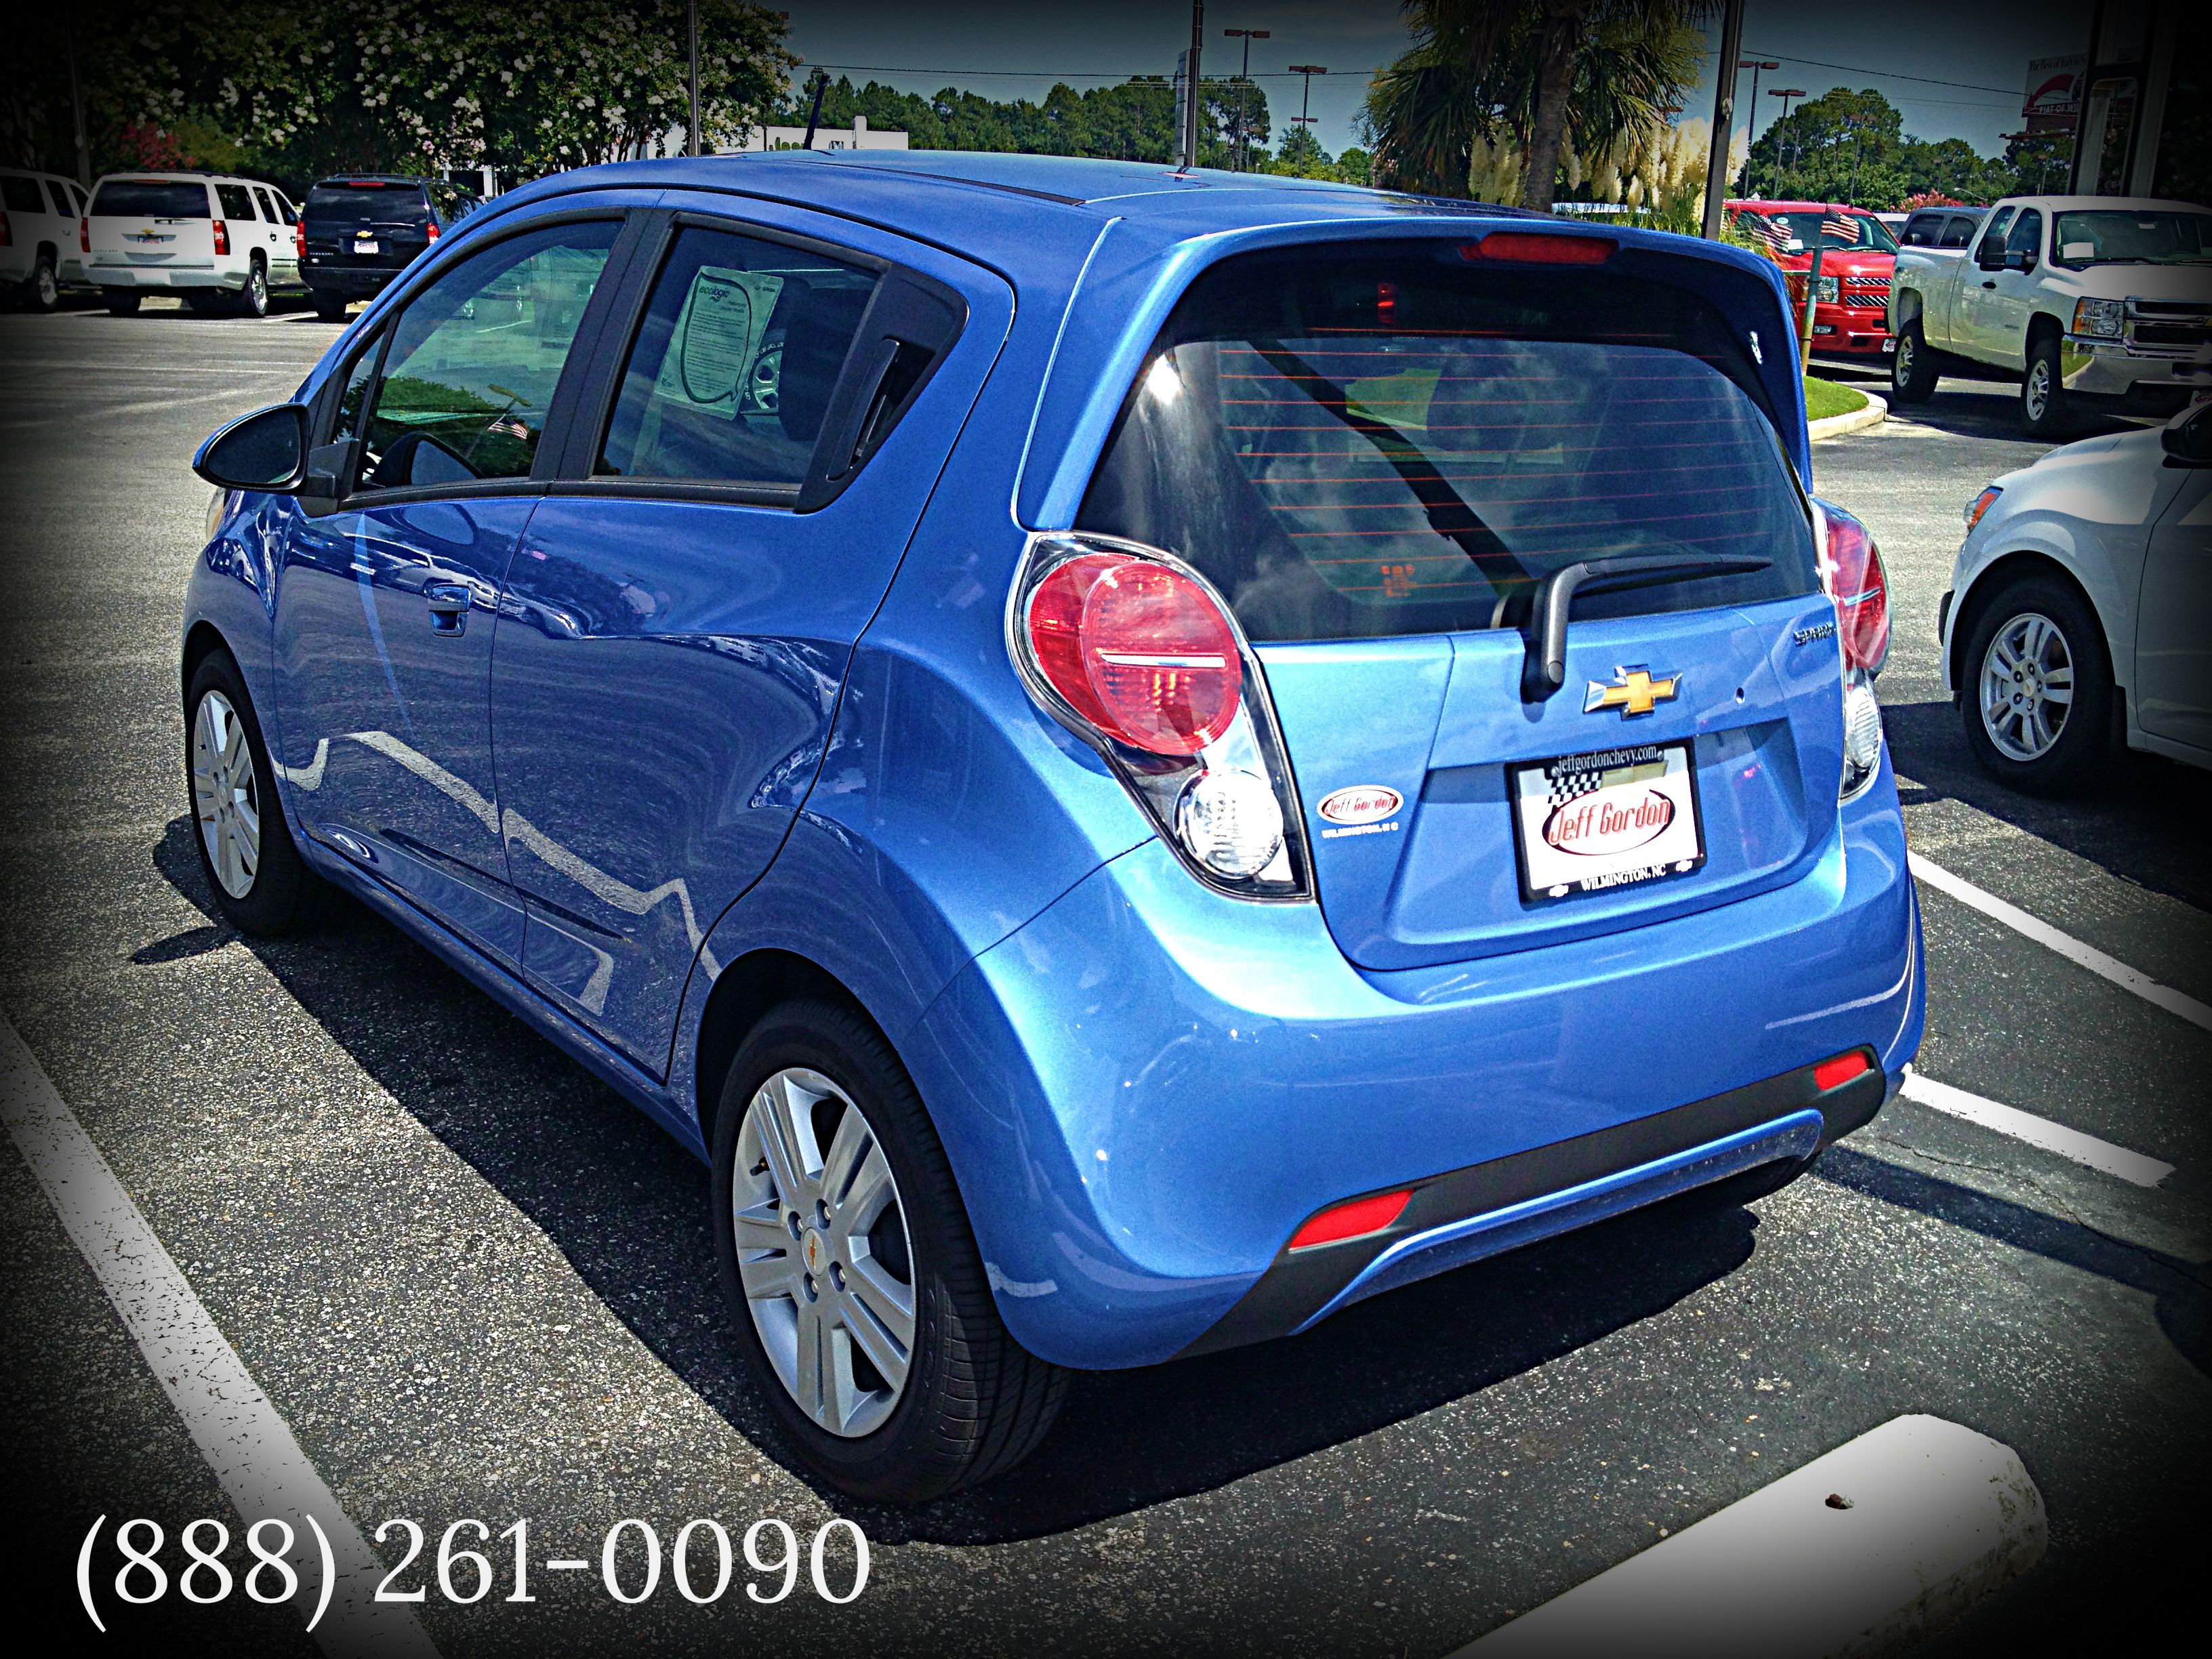 2013 Denim Chevy Spark Chevy Dealers Chevy Chevrolet Dealership